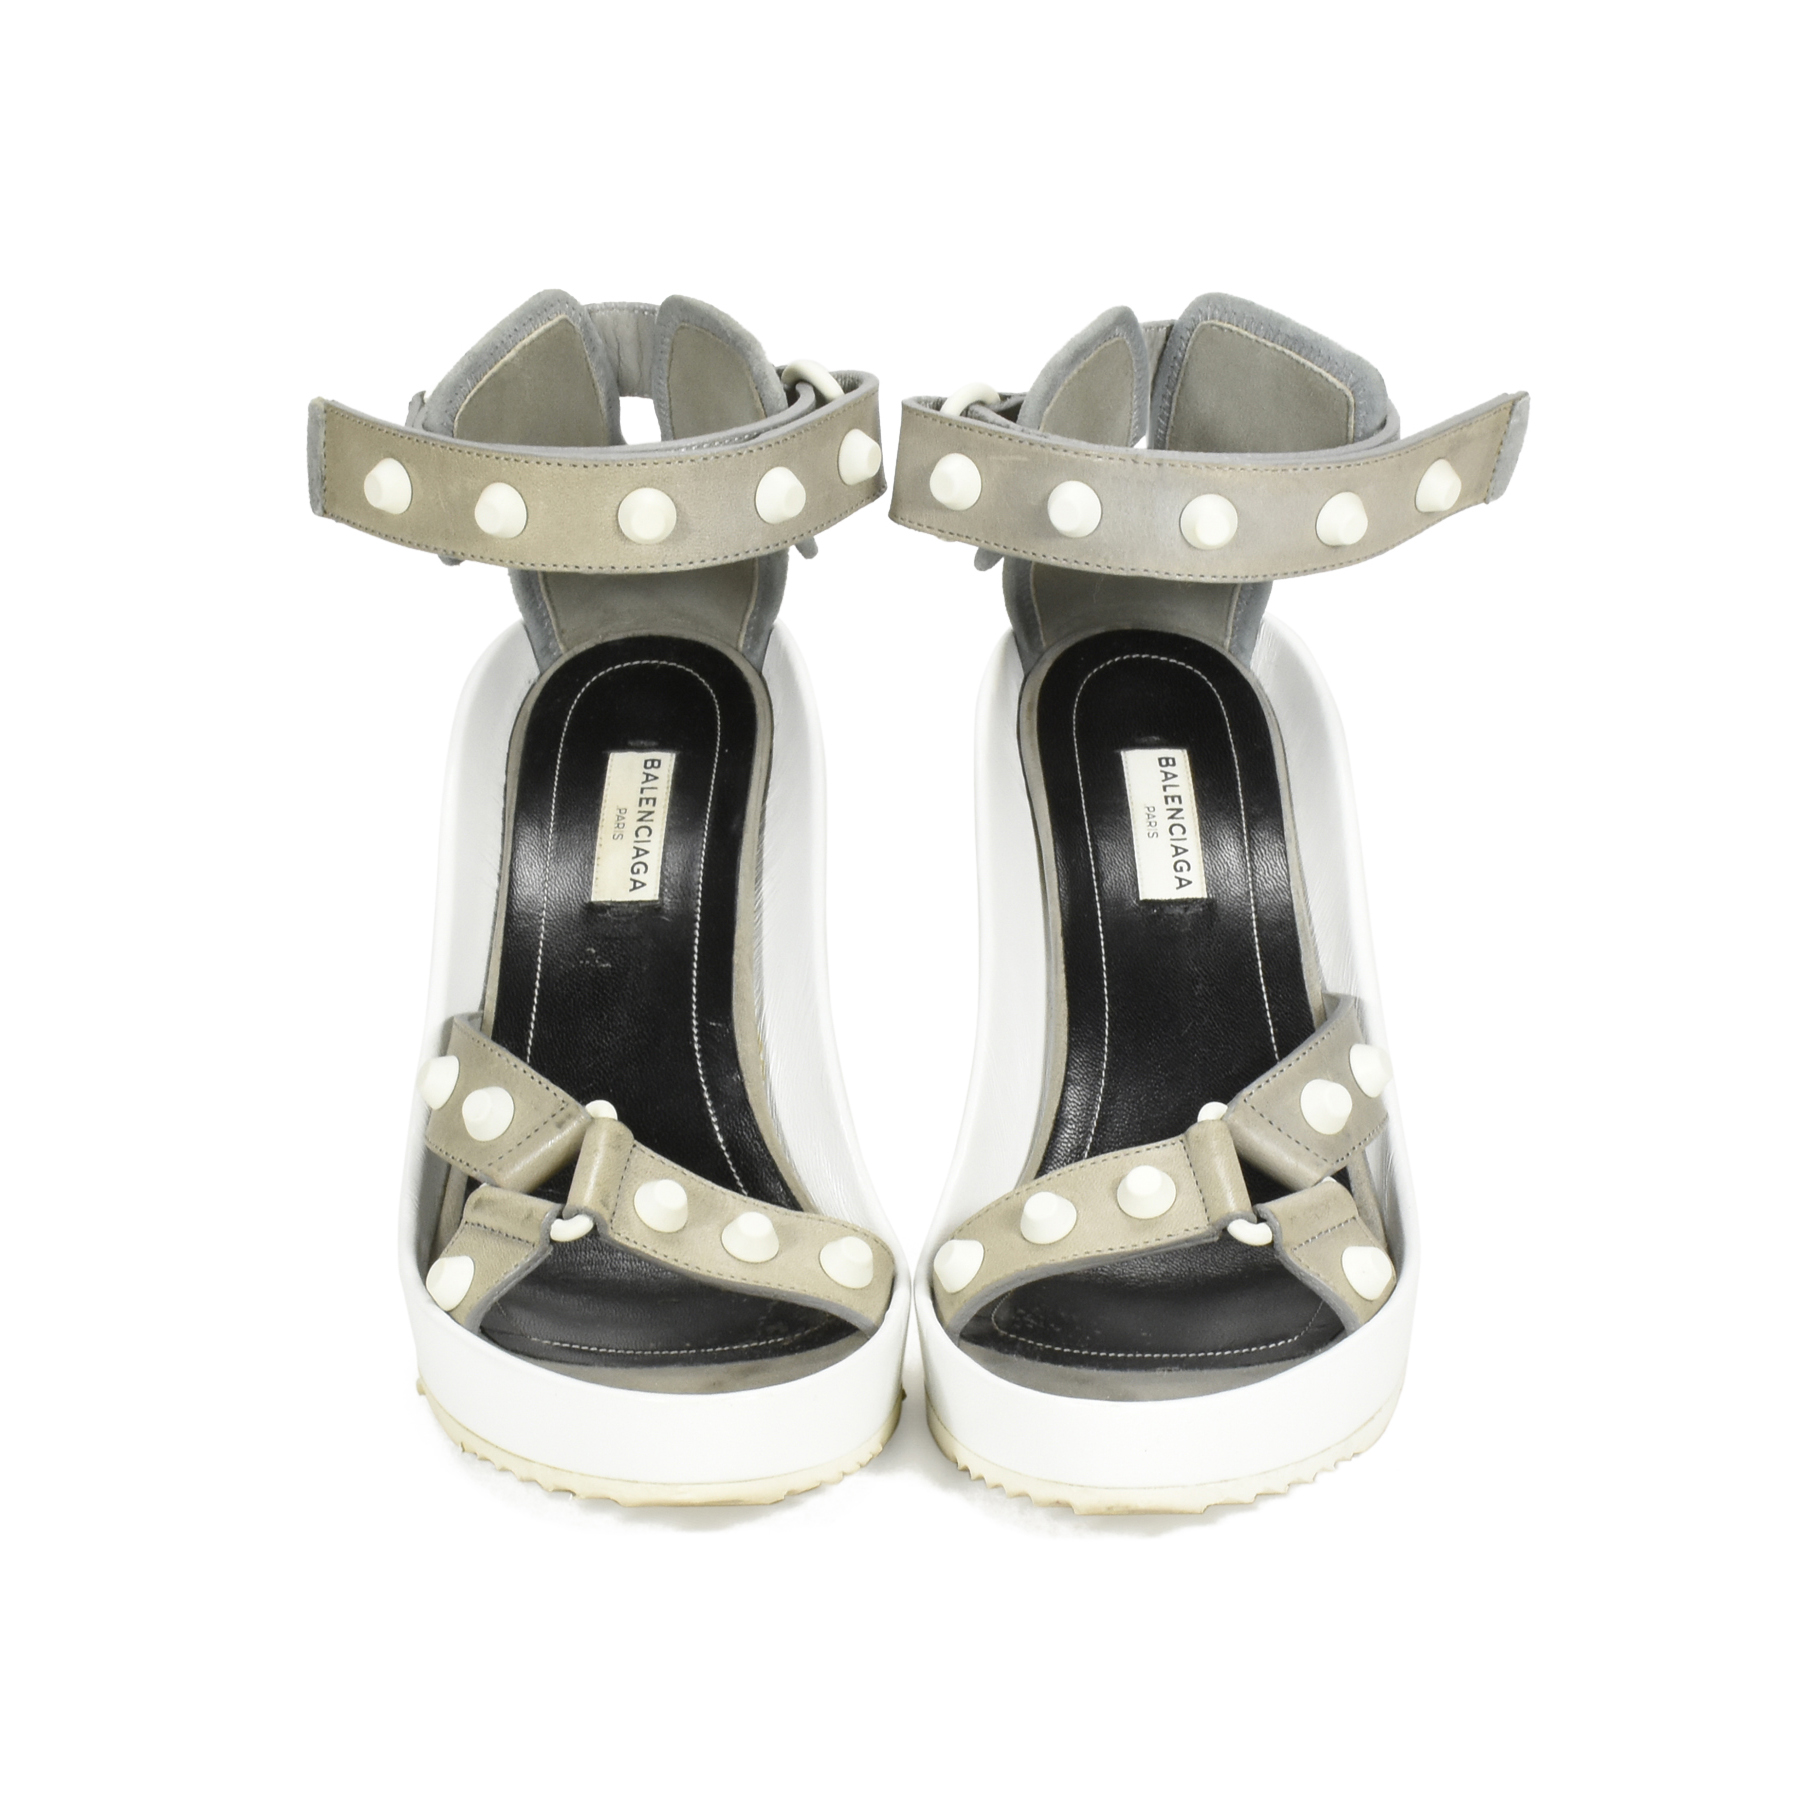 f59535e5c341 Authentic Second Hand Balenciaga Studded Wedge Sandals (PSS-394-00008)